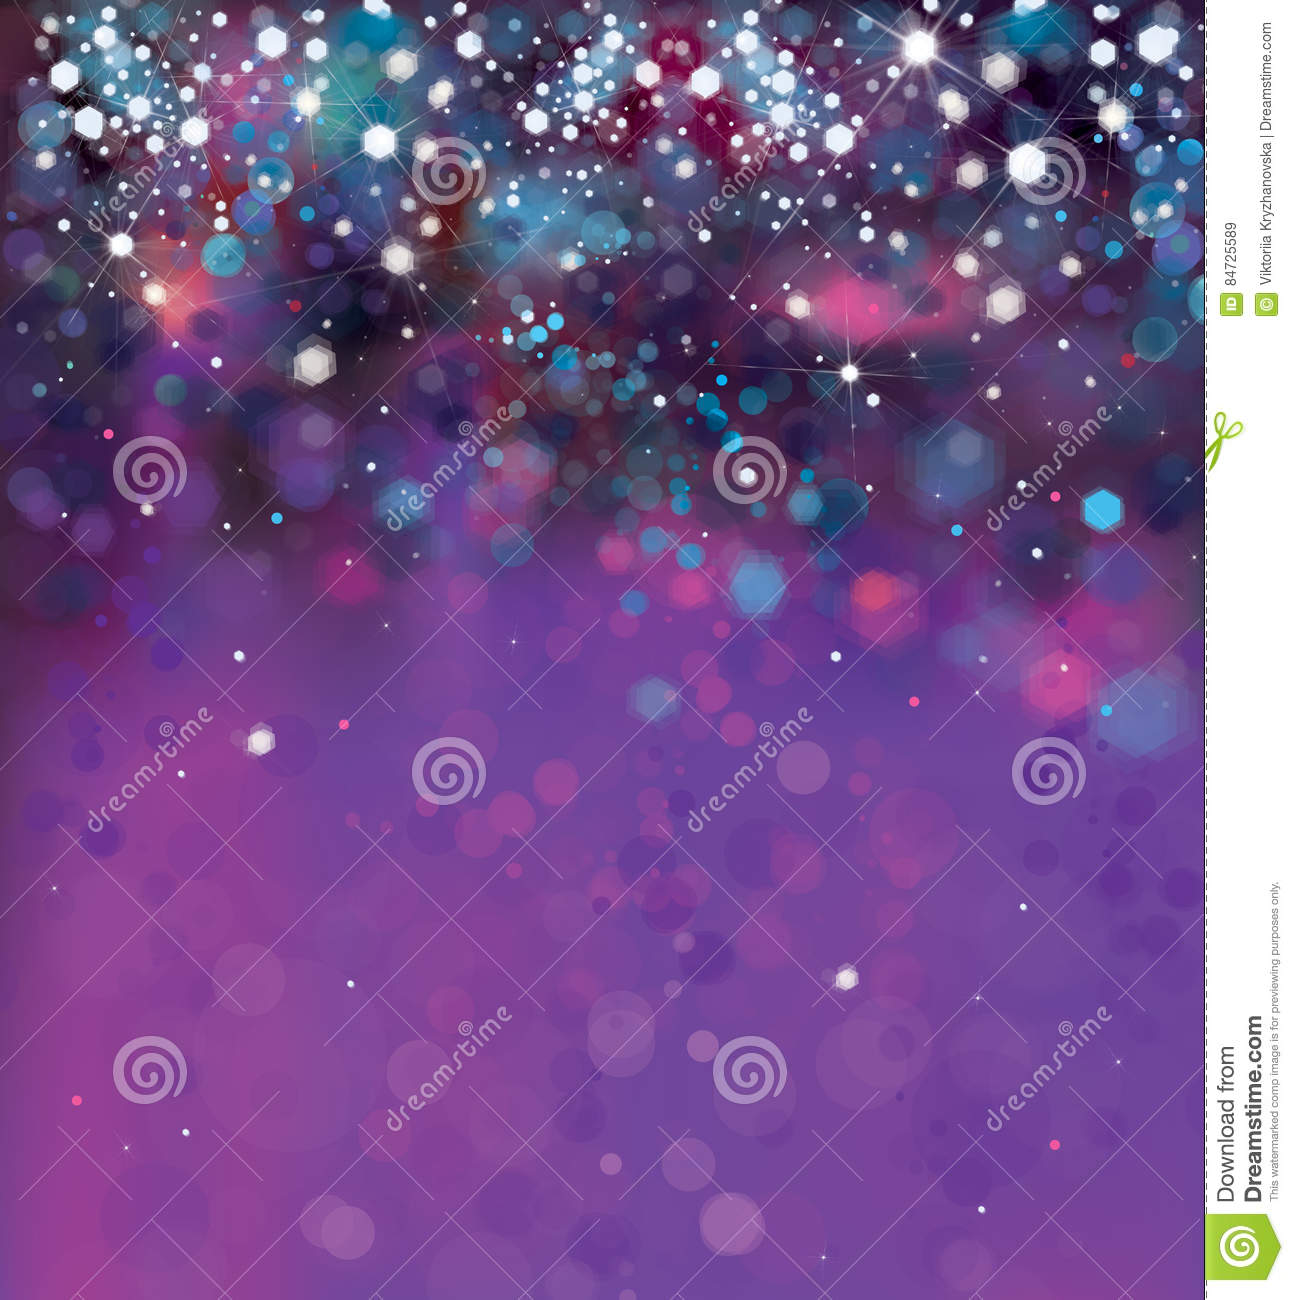 Vector abstract violet background.